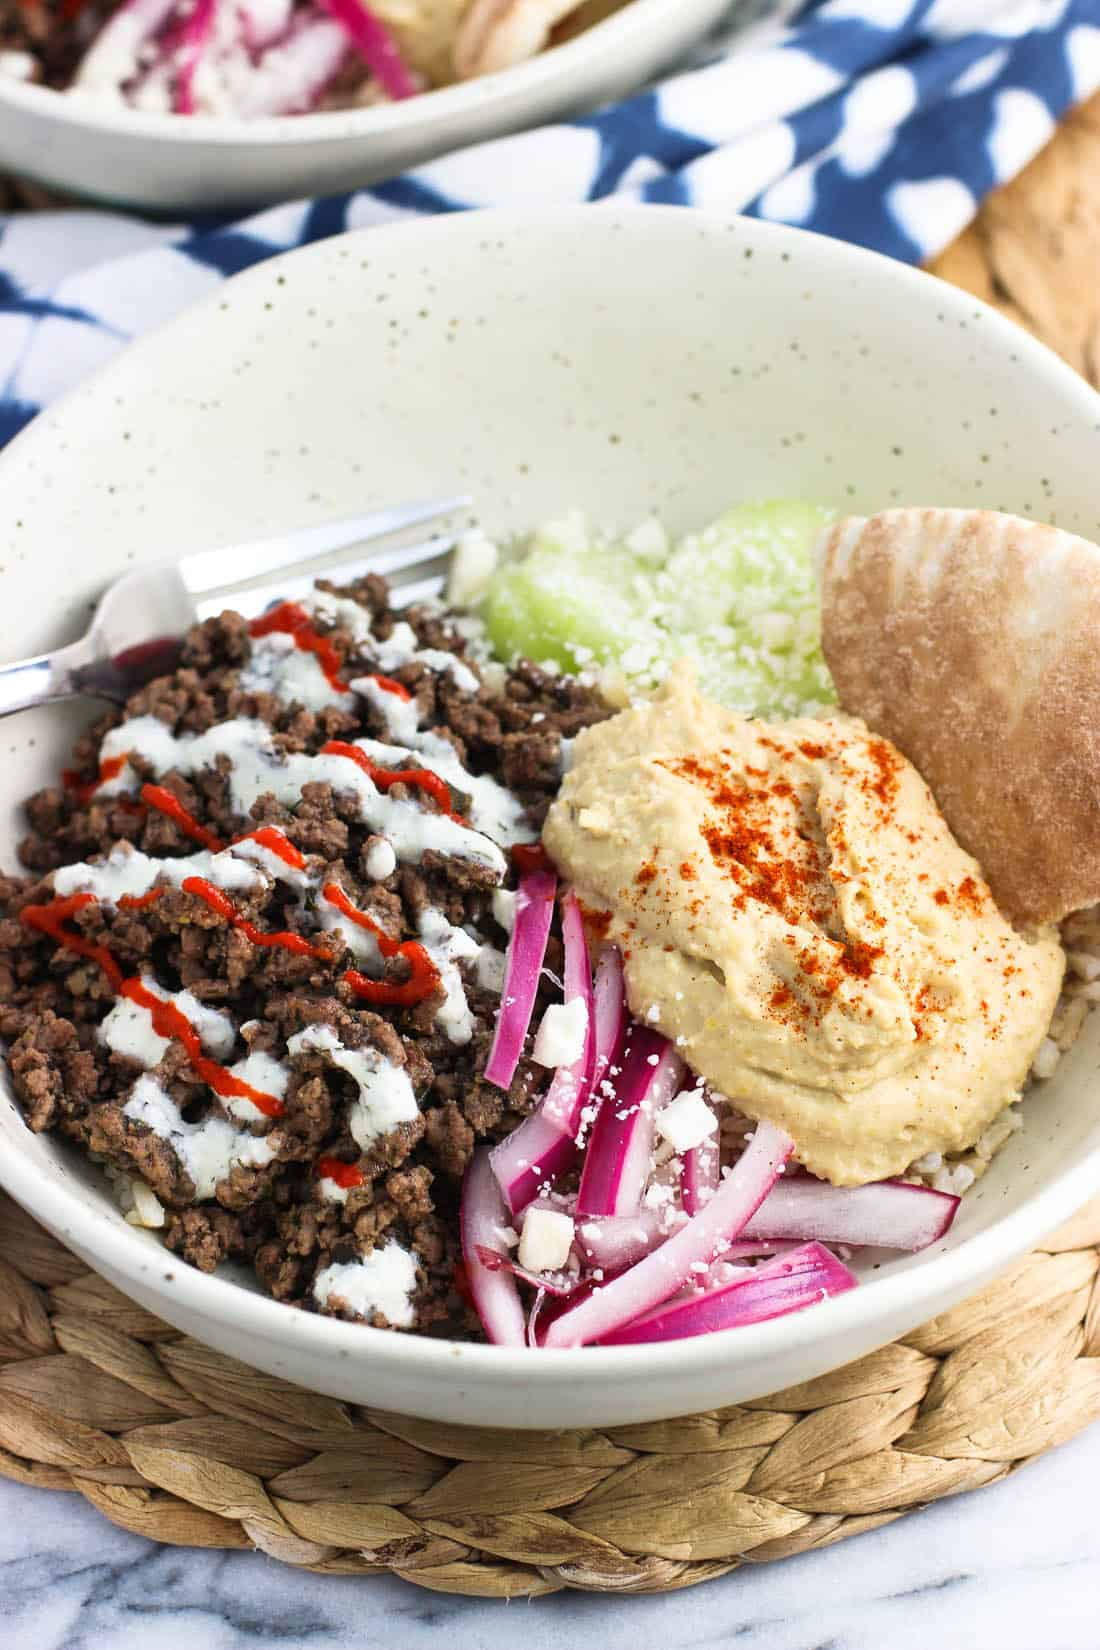 A shallow bowl filled with spiced ground beef, cucumber slices, yogurt sauce, feta, red onions, hummus, and pita